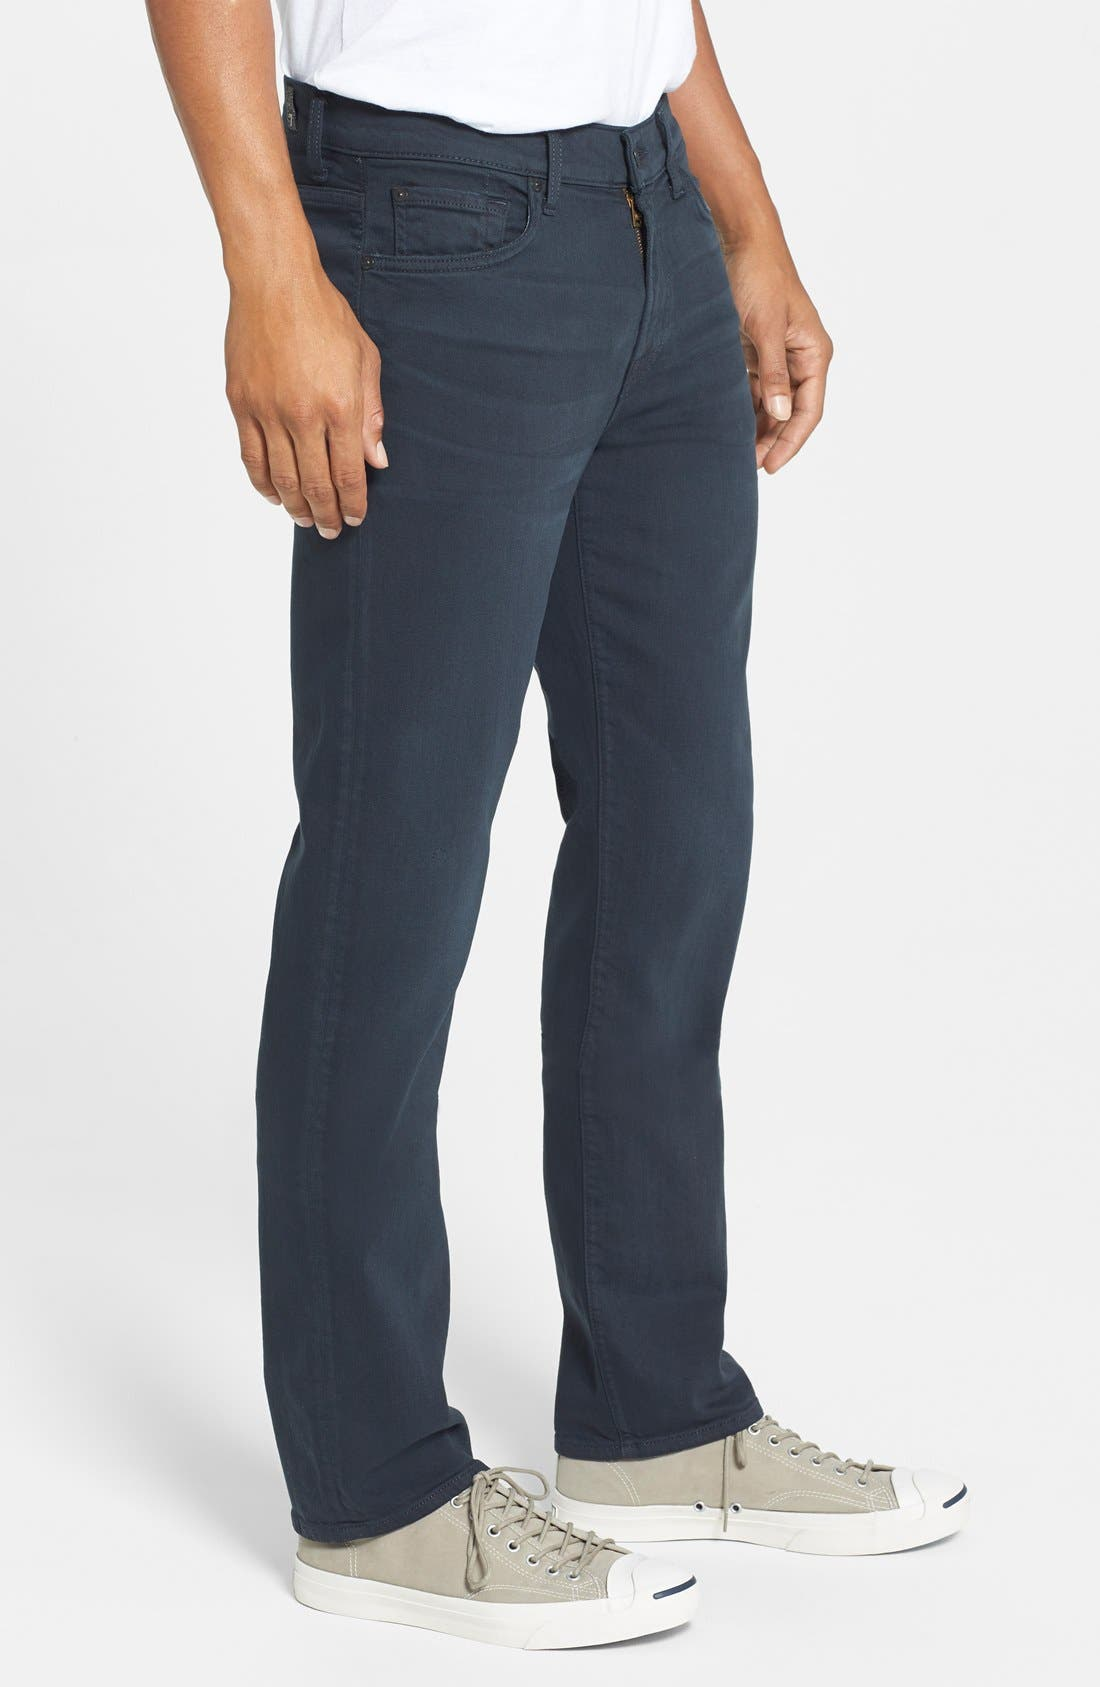 'Slimmy - Luxe Performance' Slim Fit Jeans,                             Alternate thumbnail 4, color,                             004